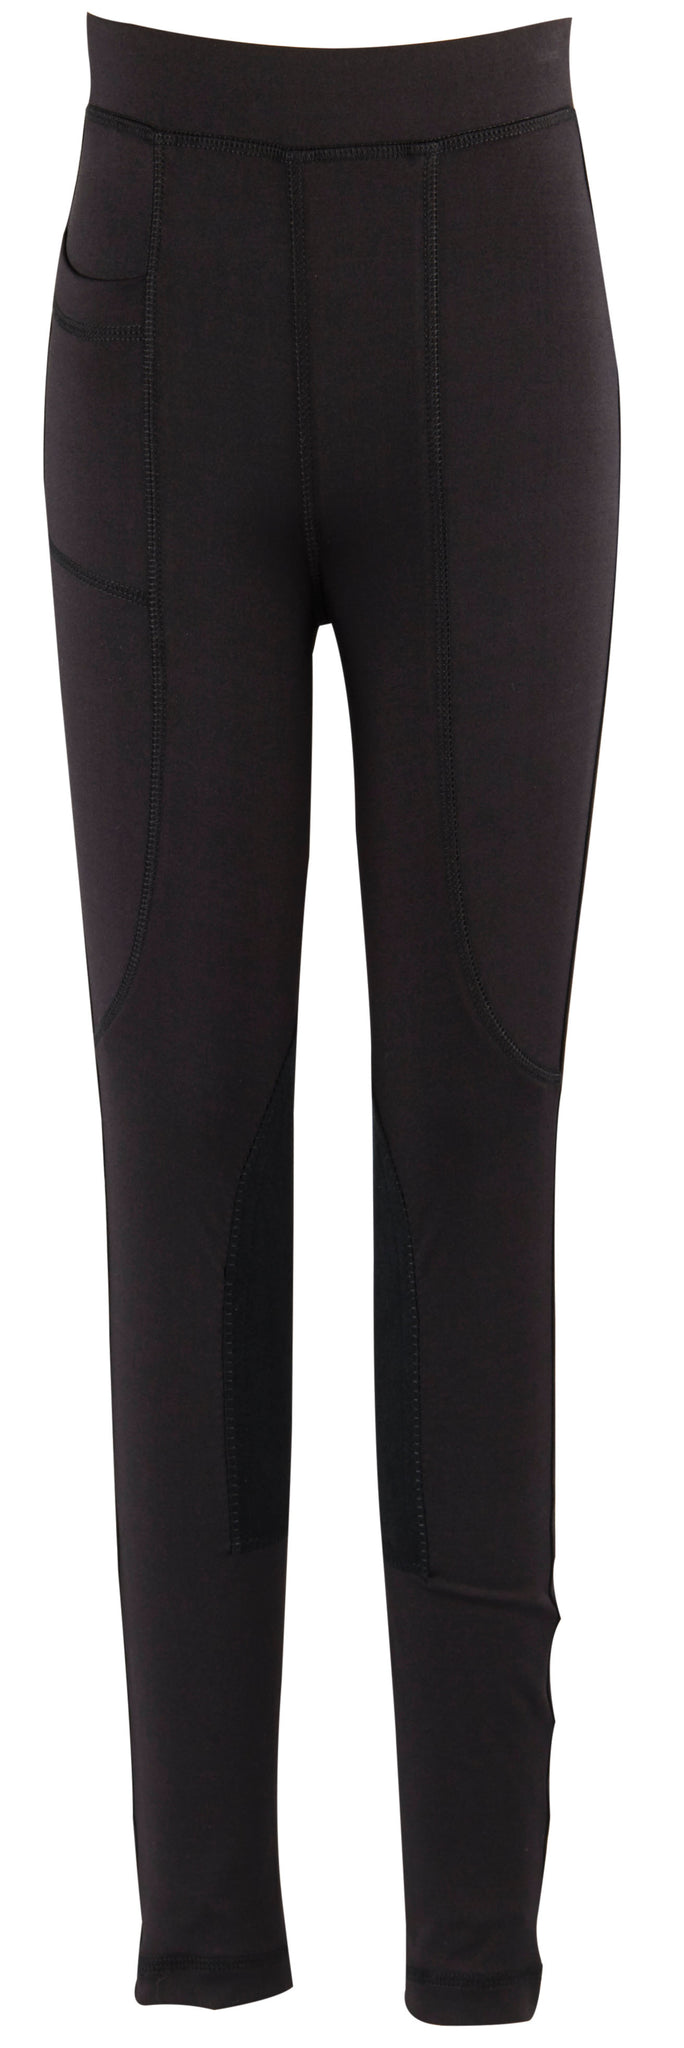 Dublin Childs Perfomance Flex Knee Patch Riding Tights